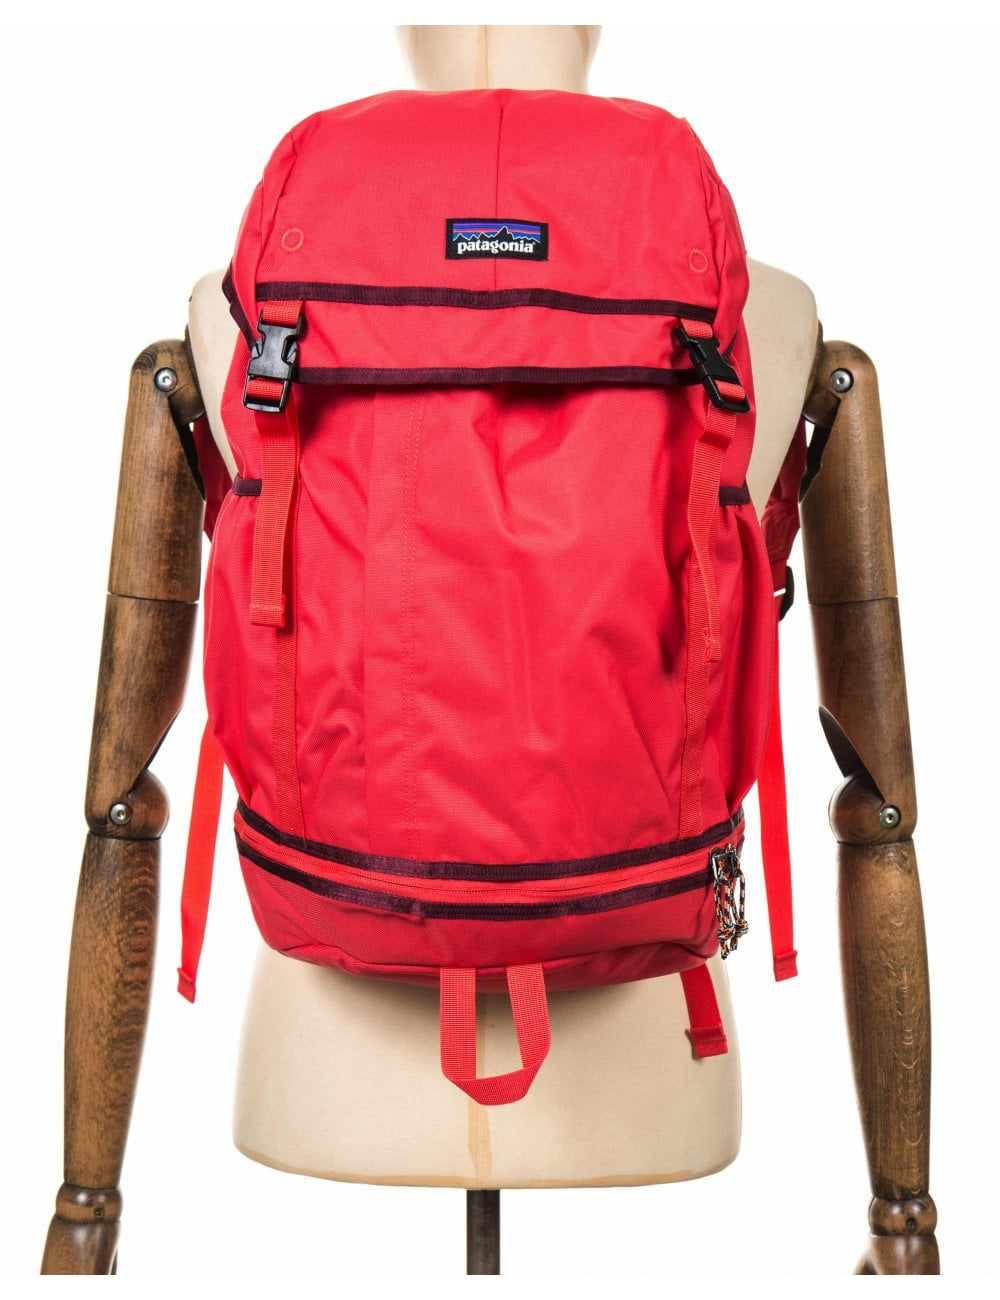 d08778a5c0 Patagonia Arbor Grande 28L Backpack - Tomato - Accessories from Fat ...